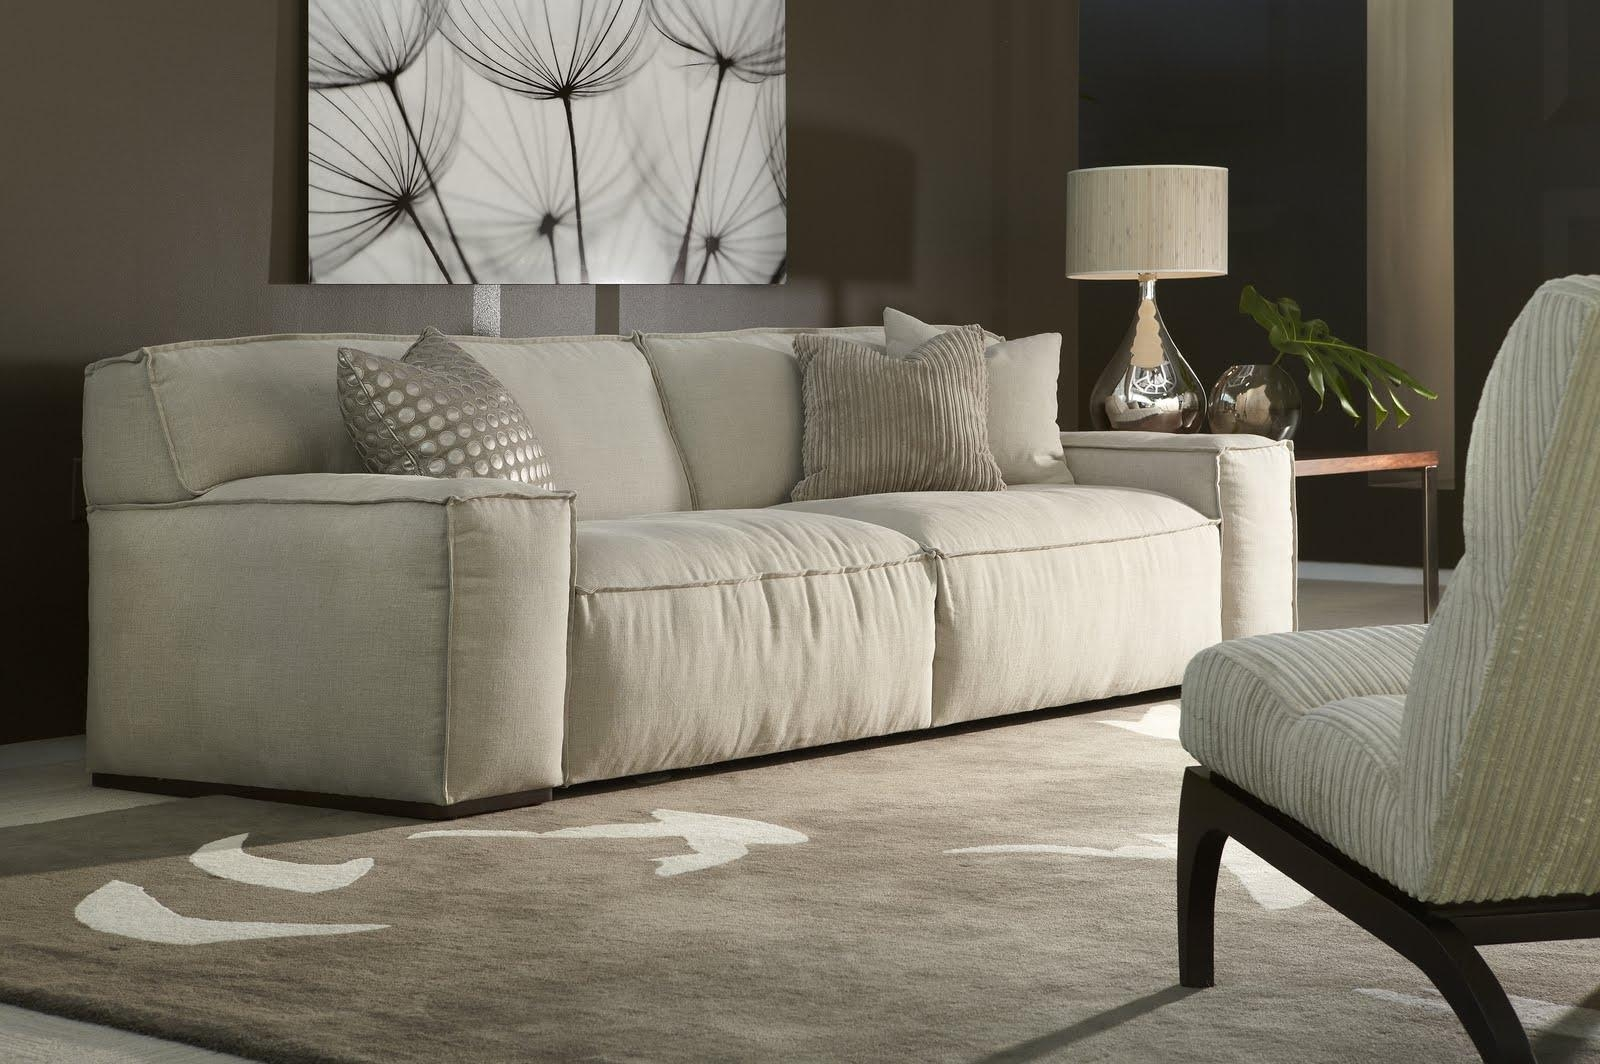 Sofas Center : Excellent Down Sectional Sofa Images Concept Within Down Filled Sectional Sofa (View 9 of 15)